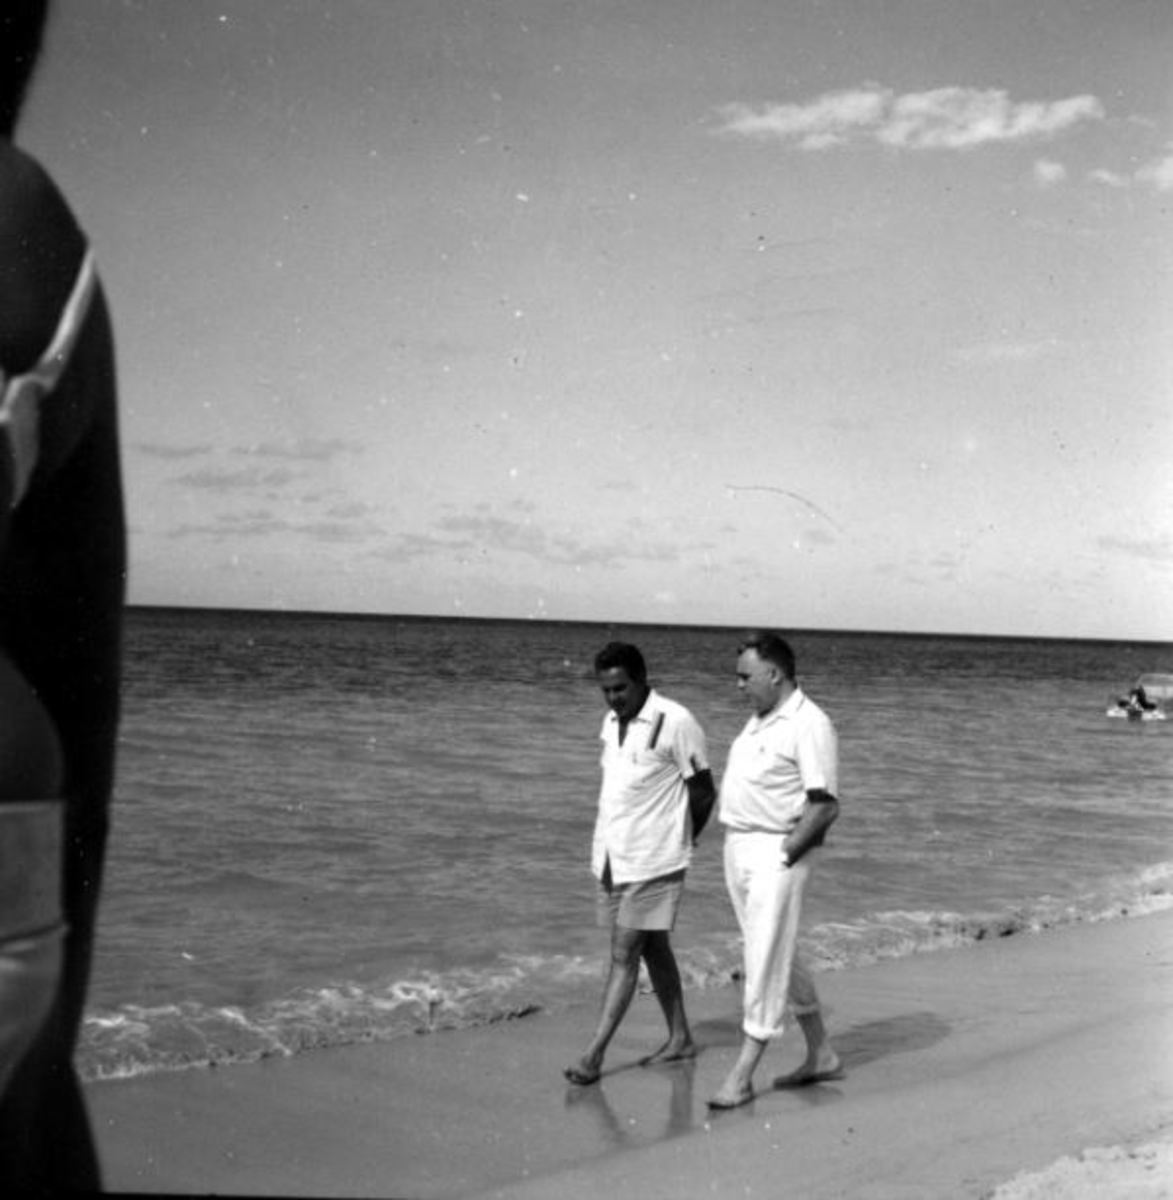 Strolling on the Jamaican beach, Cubby Broccoli and Harry Saltzman are deep in conversation about producing.